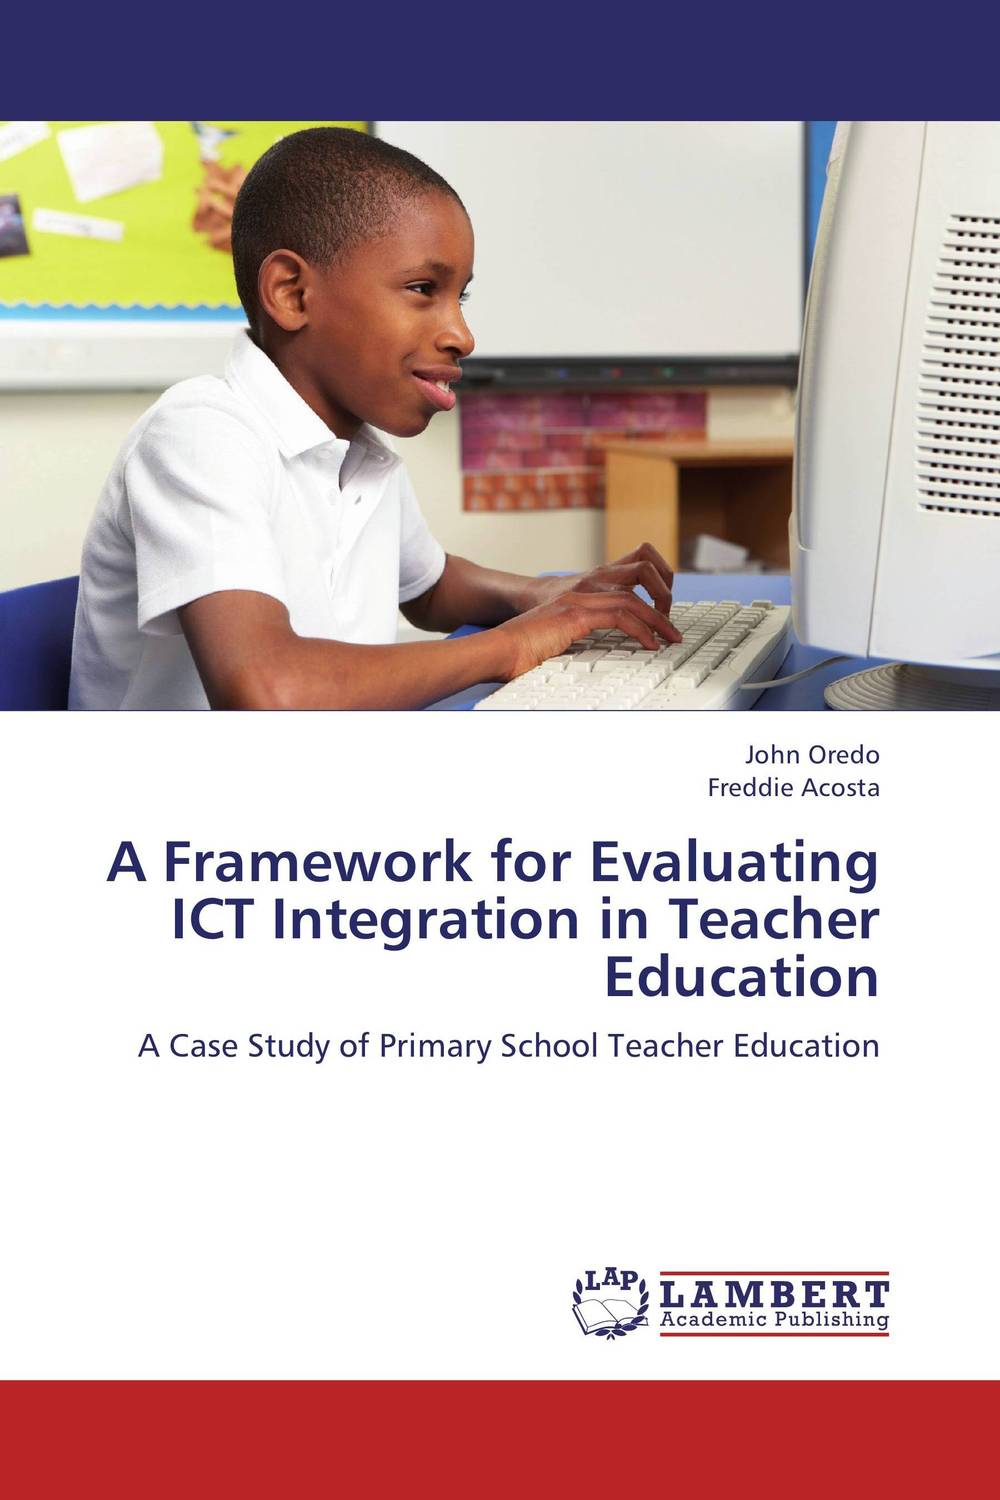 A Framework for Evaluating ICT Integration in Teacher Education